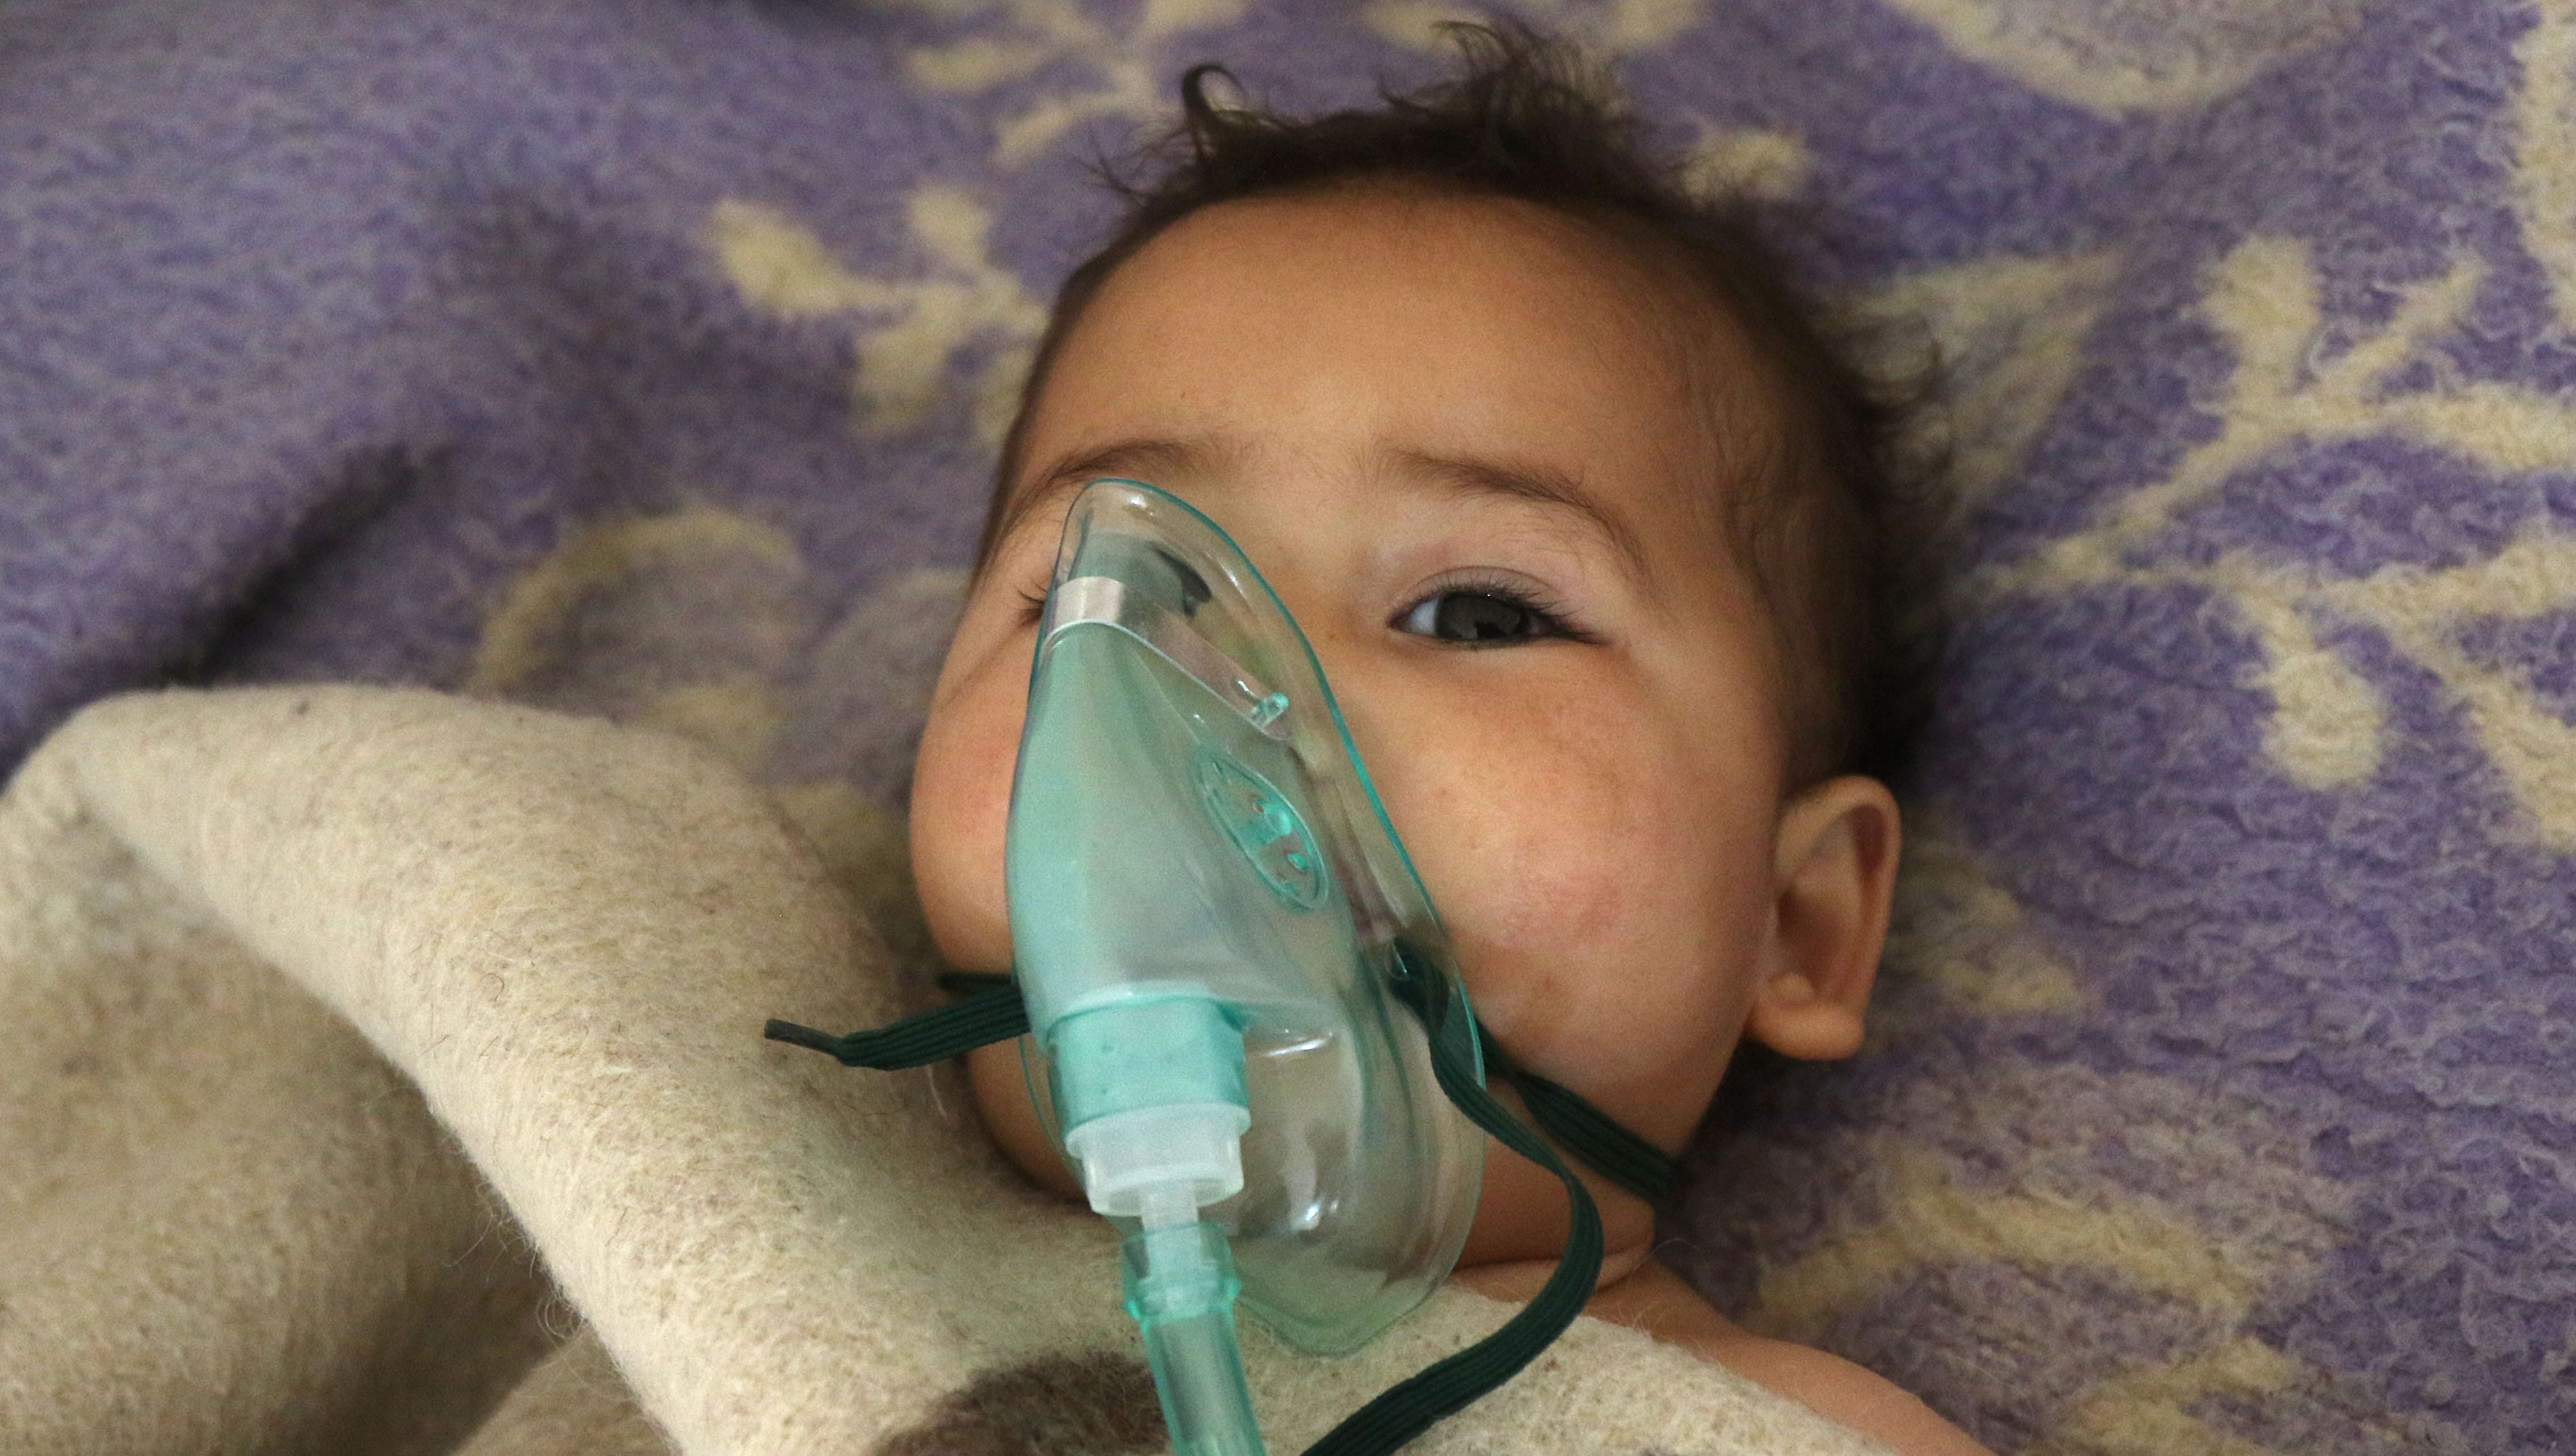 Scores reported dead in Syria gas attack